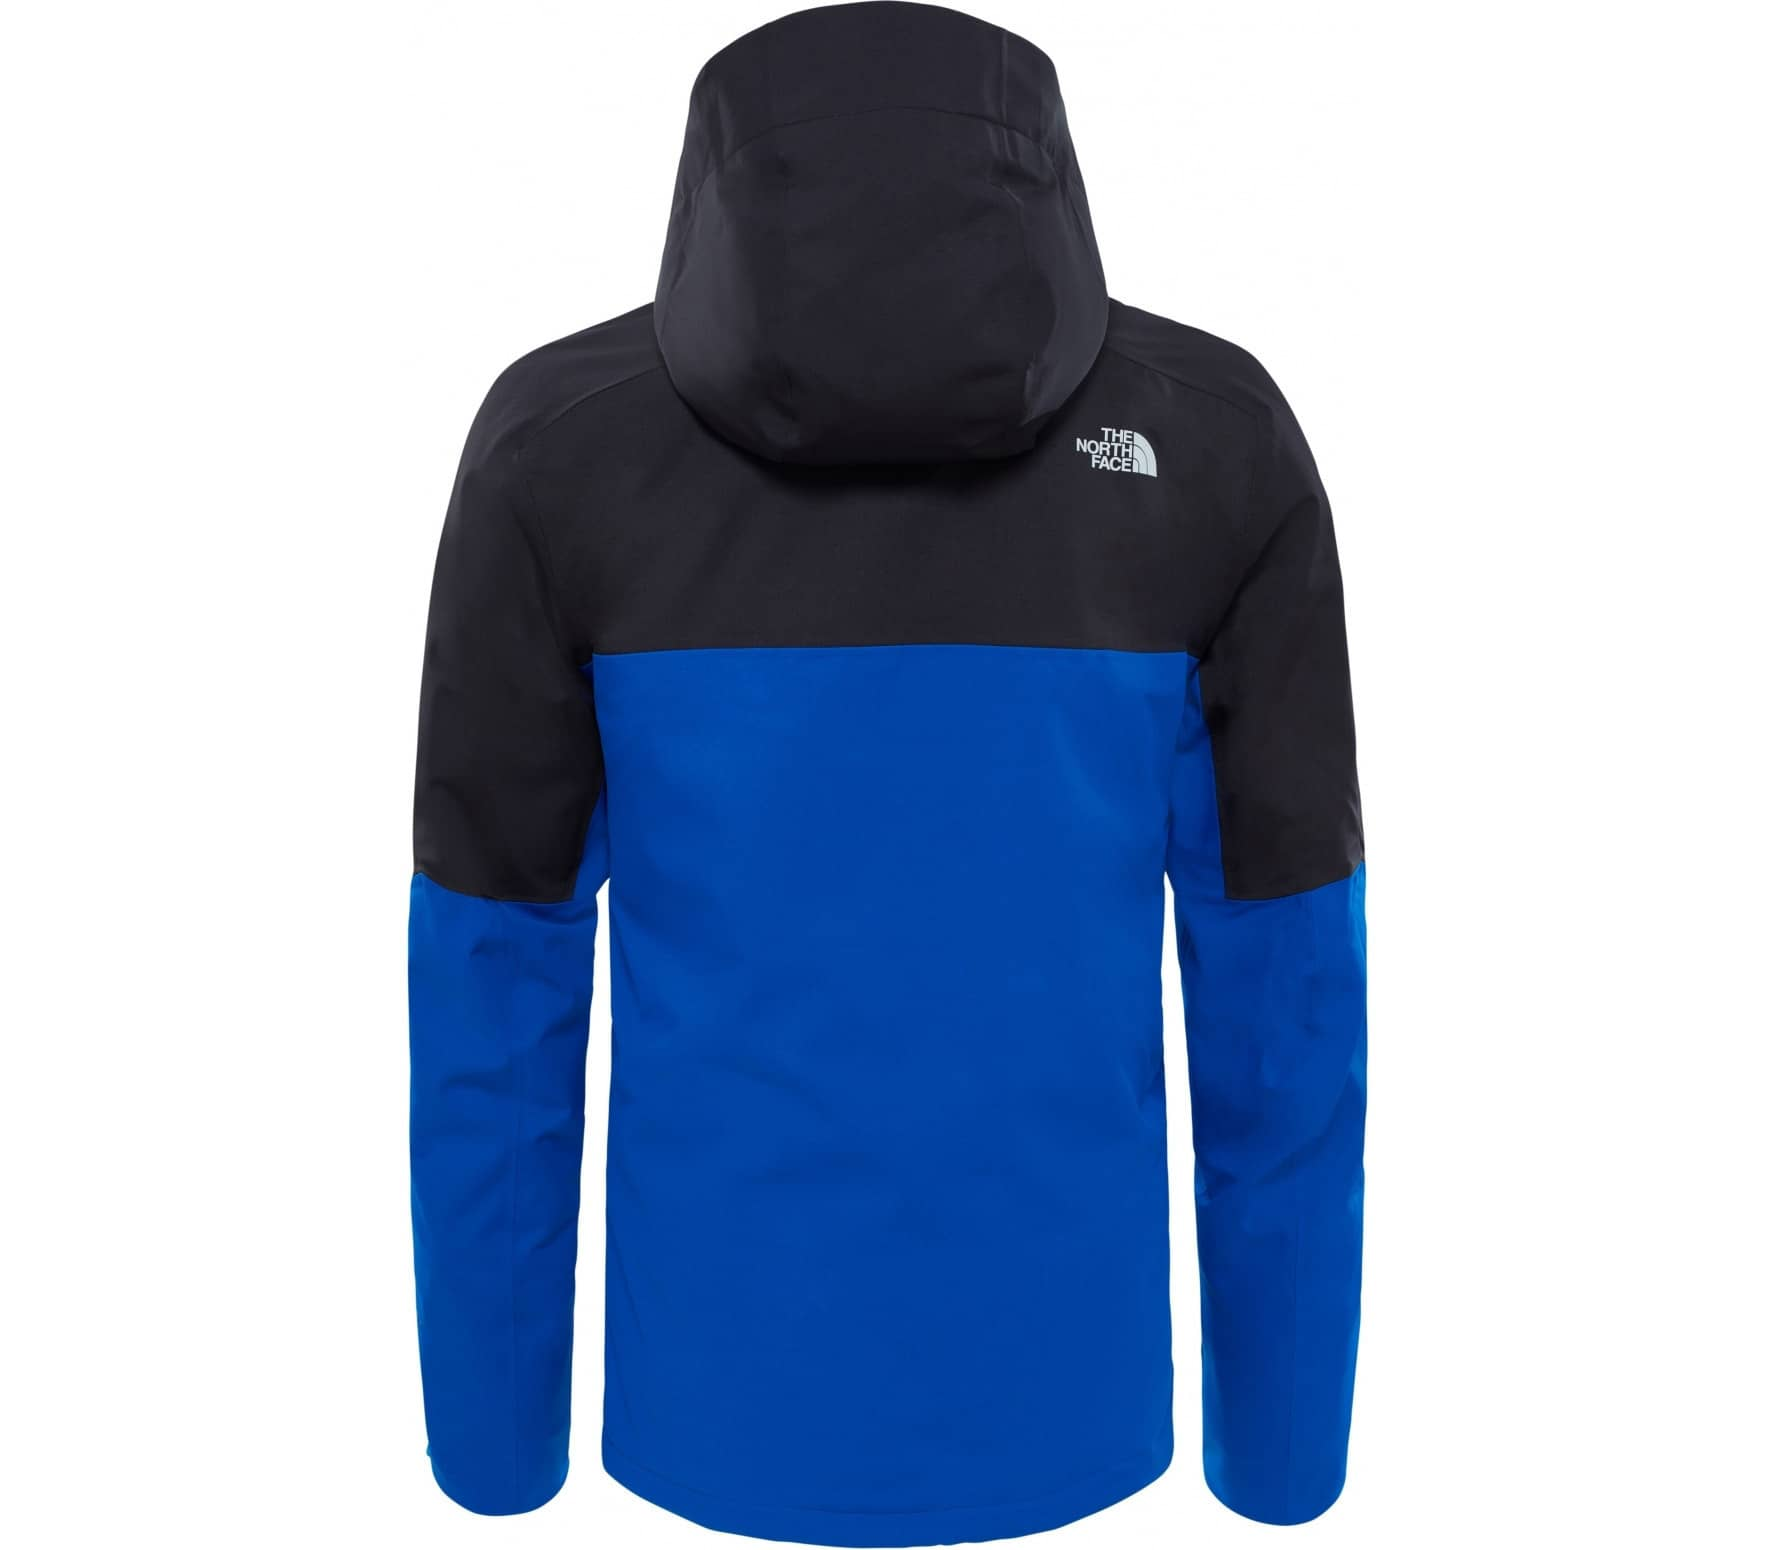 Hommes Acheter De Ski En The North Manteau Face Chakal bleunoir tXYX4wq8